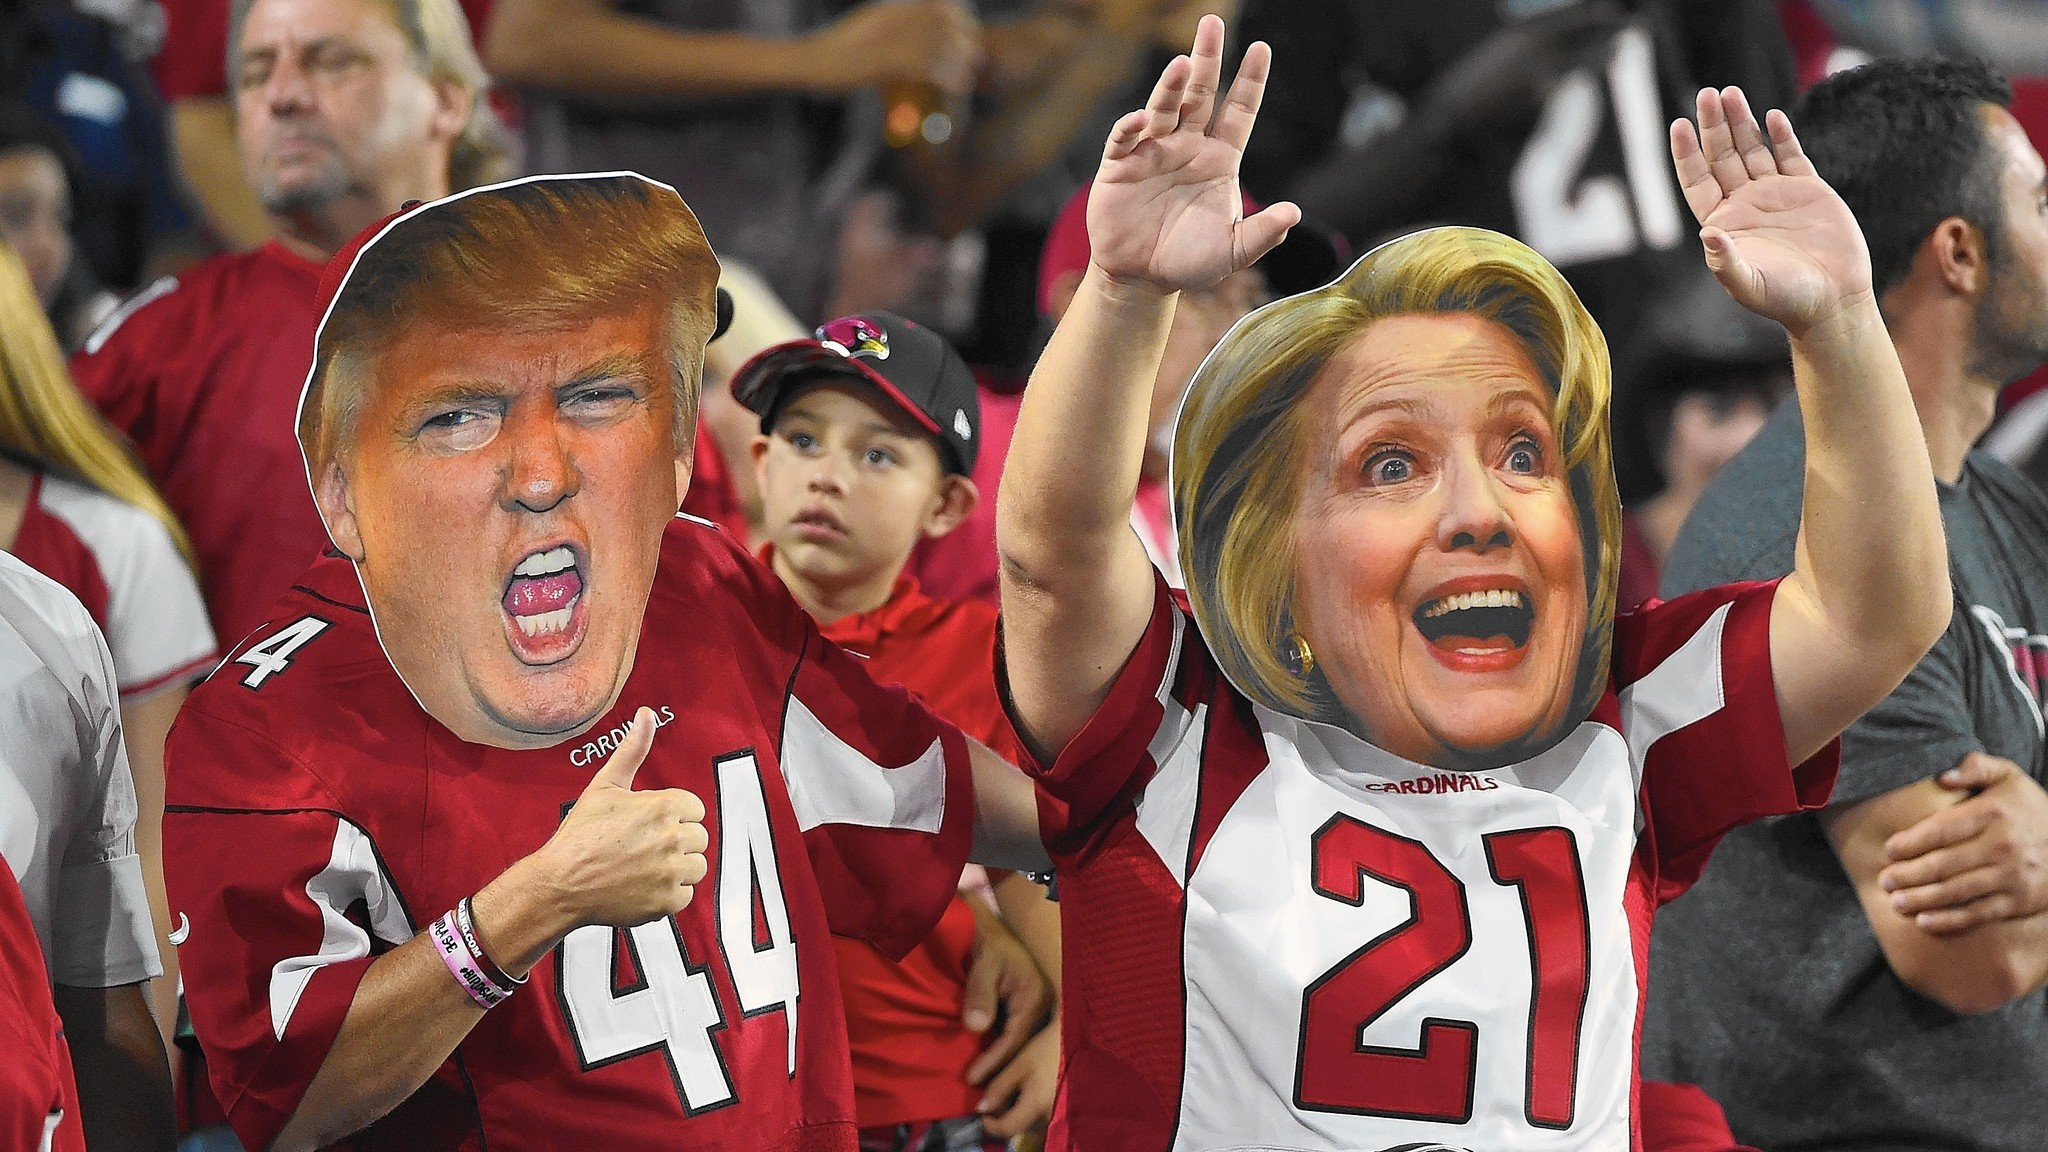 What plagues Clinton in the final days: The Chicago Way - Chicago Tribune